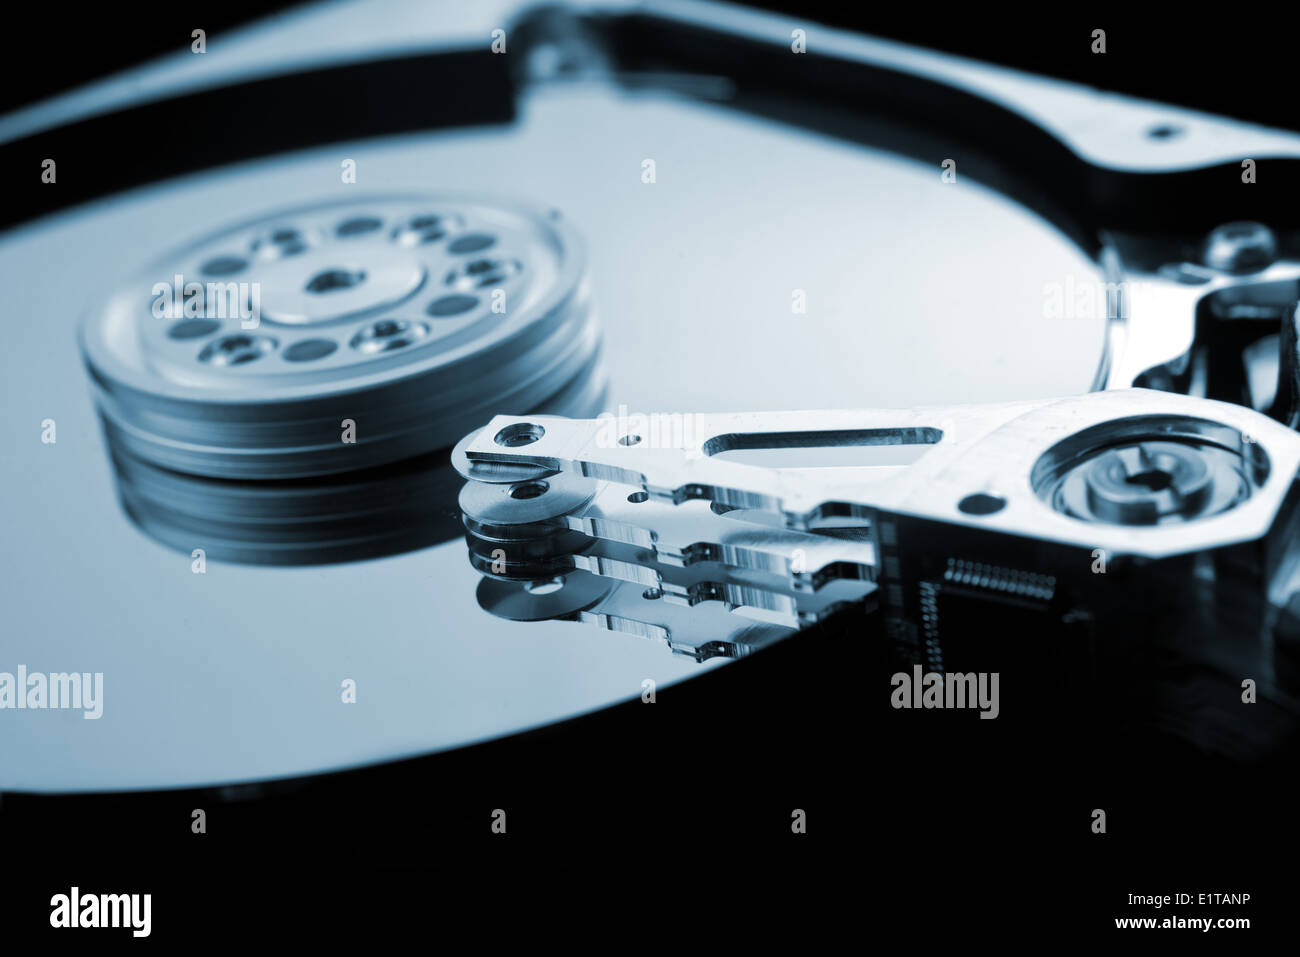 Computer hard disk close up detail with selective focus and shallow depth of field. Computer hardware, data storage. - Stock Image